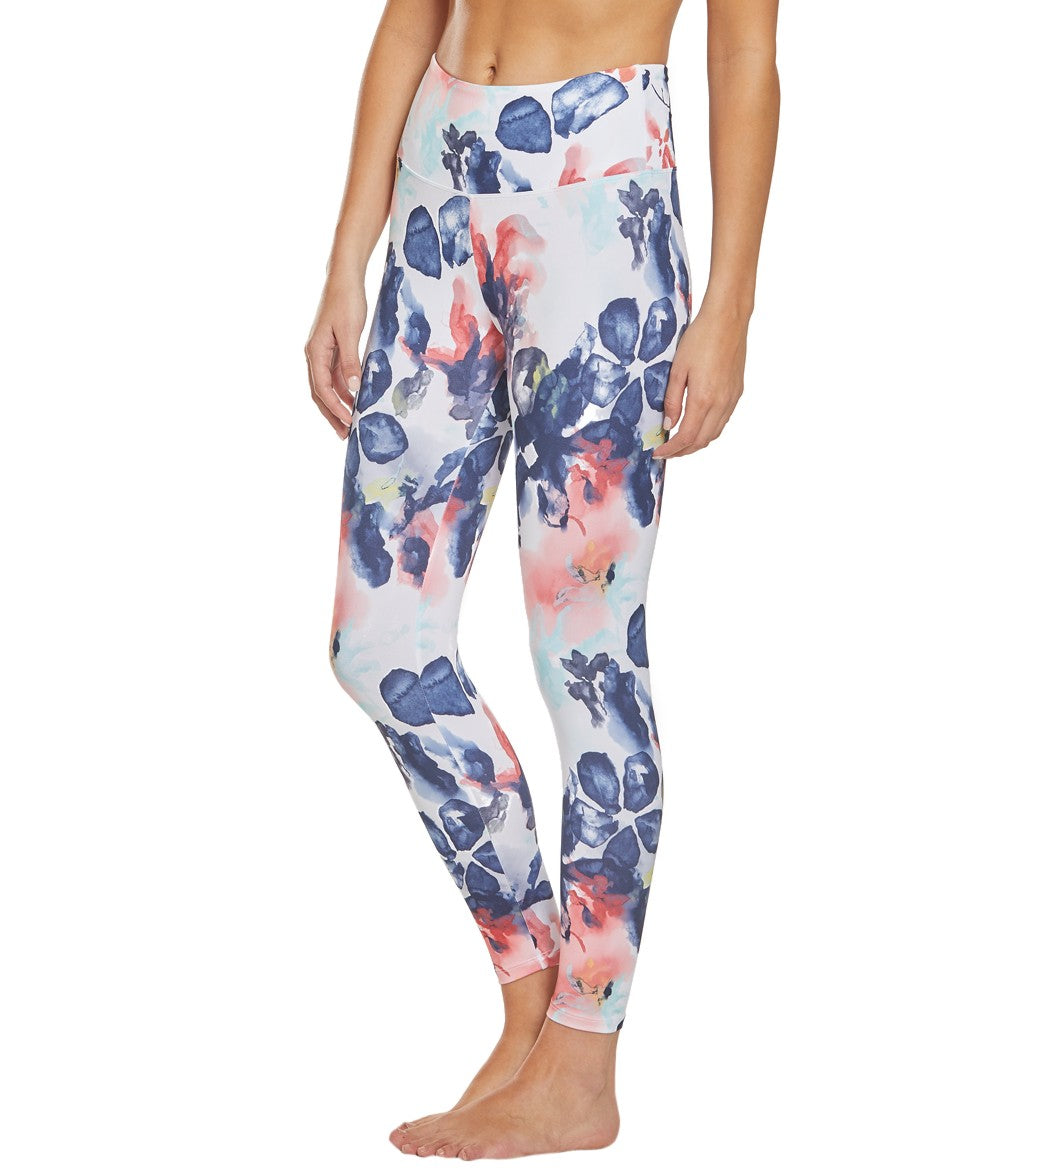 2654d066576cb9 Balance Collection Printed High Waisted Yoga Capris at YogaOutlet.com